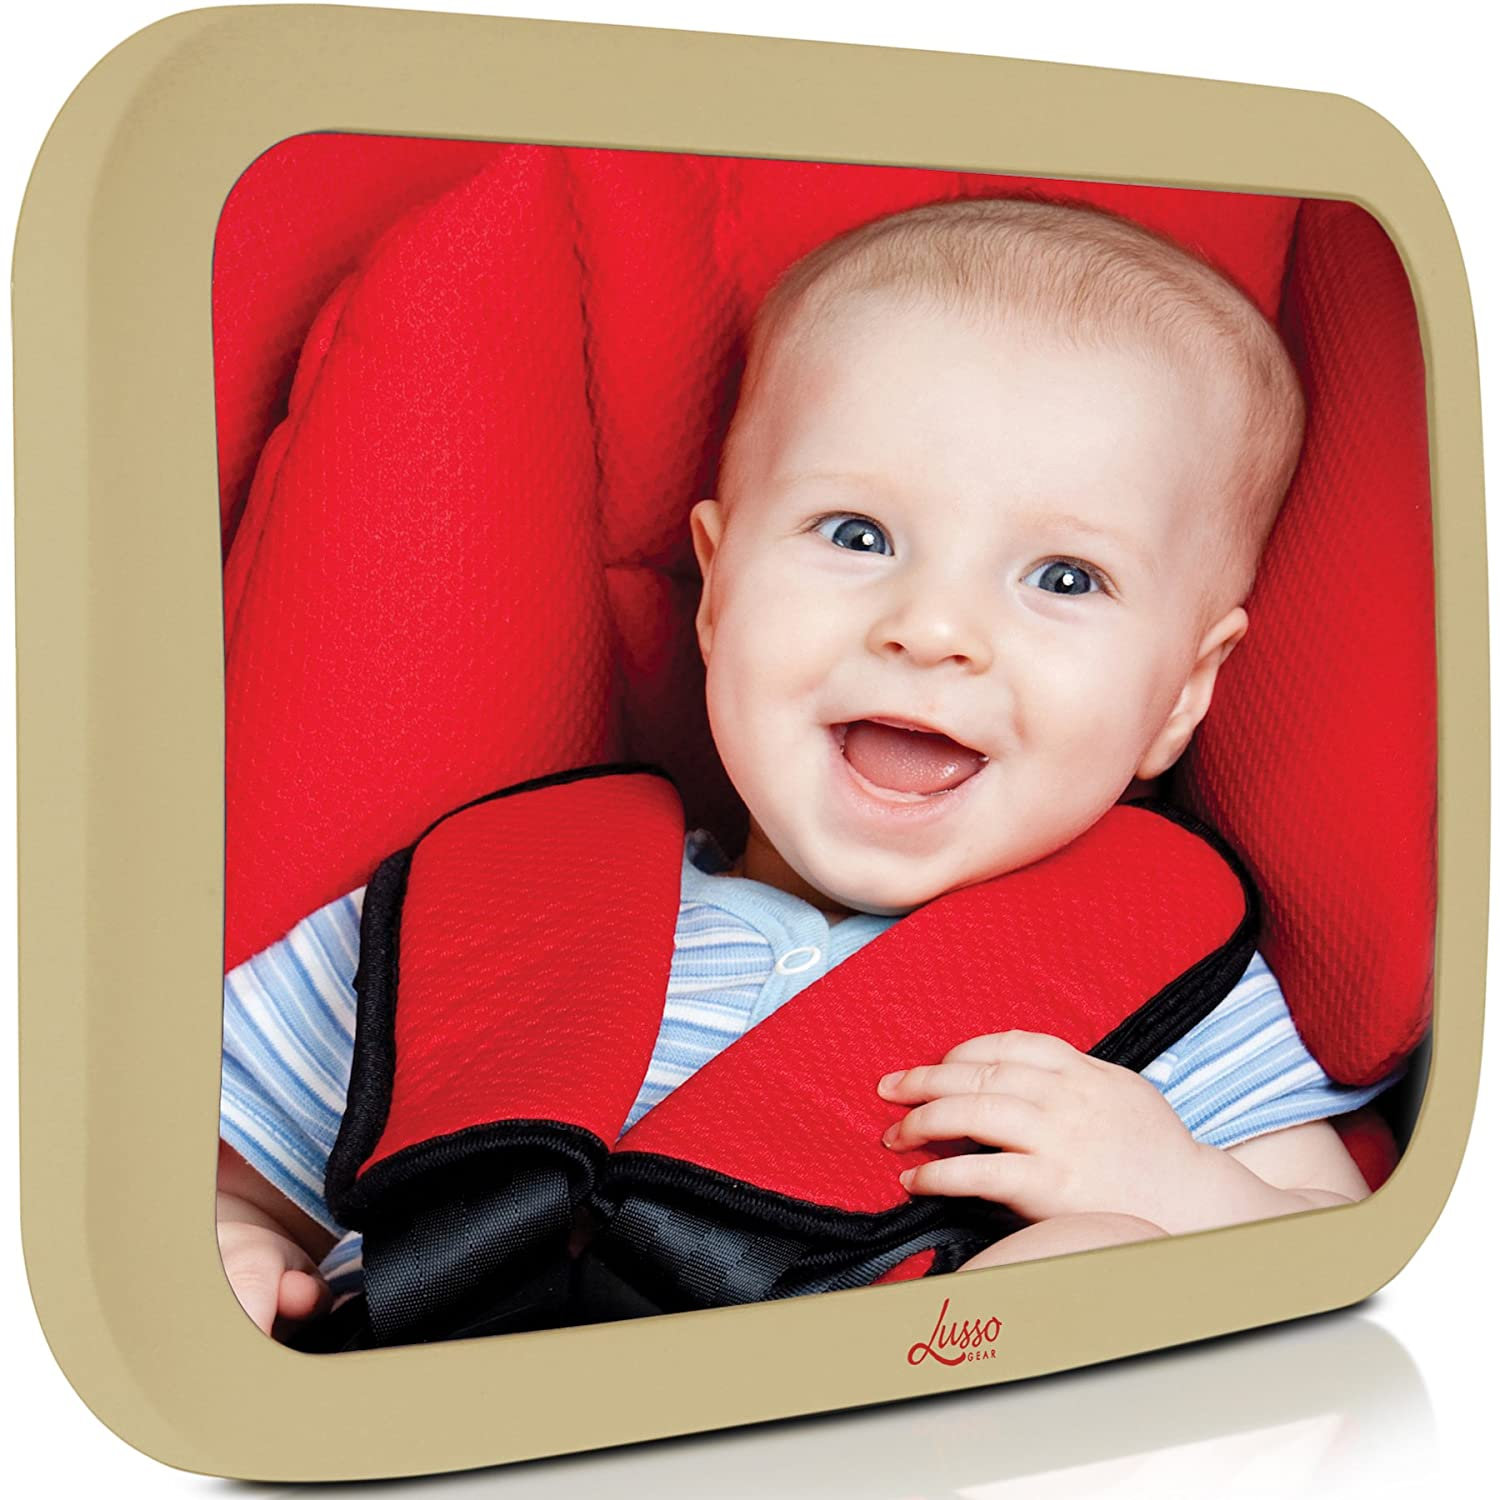 Baby Backseat Mirror for Car - Largest and Most Stable Mirror with Premium Matte Finish - Crystal Clear View of Infant in Rear Facing Car Seat - Safe, Secure and Shatterproofvcv Lusso Gear